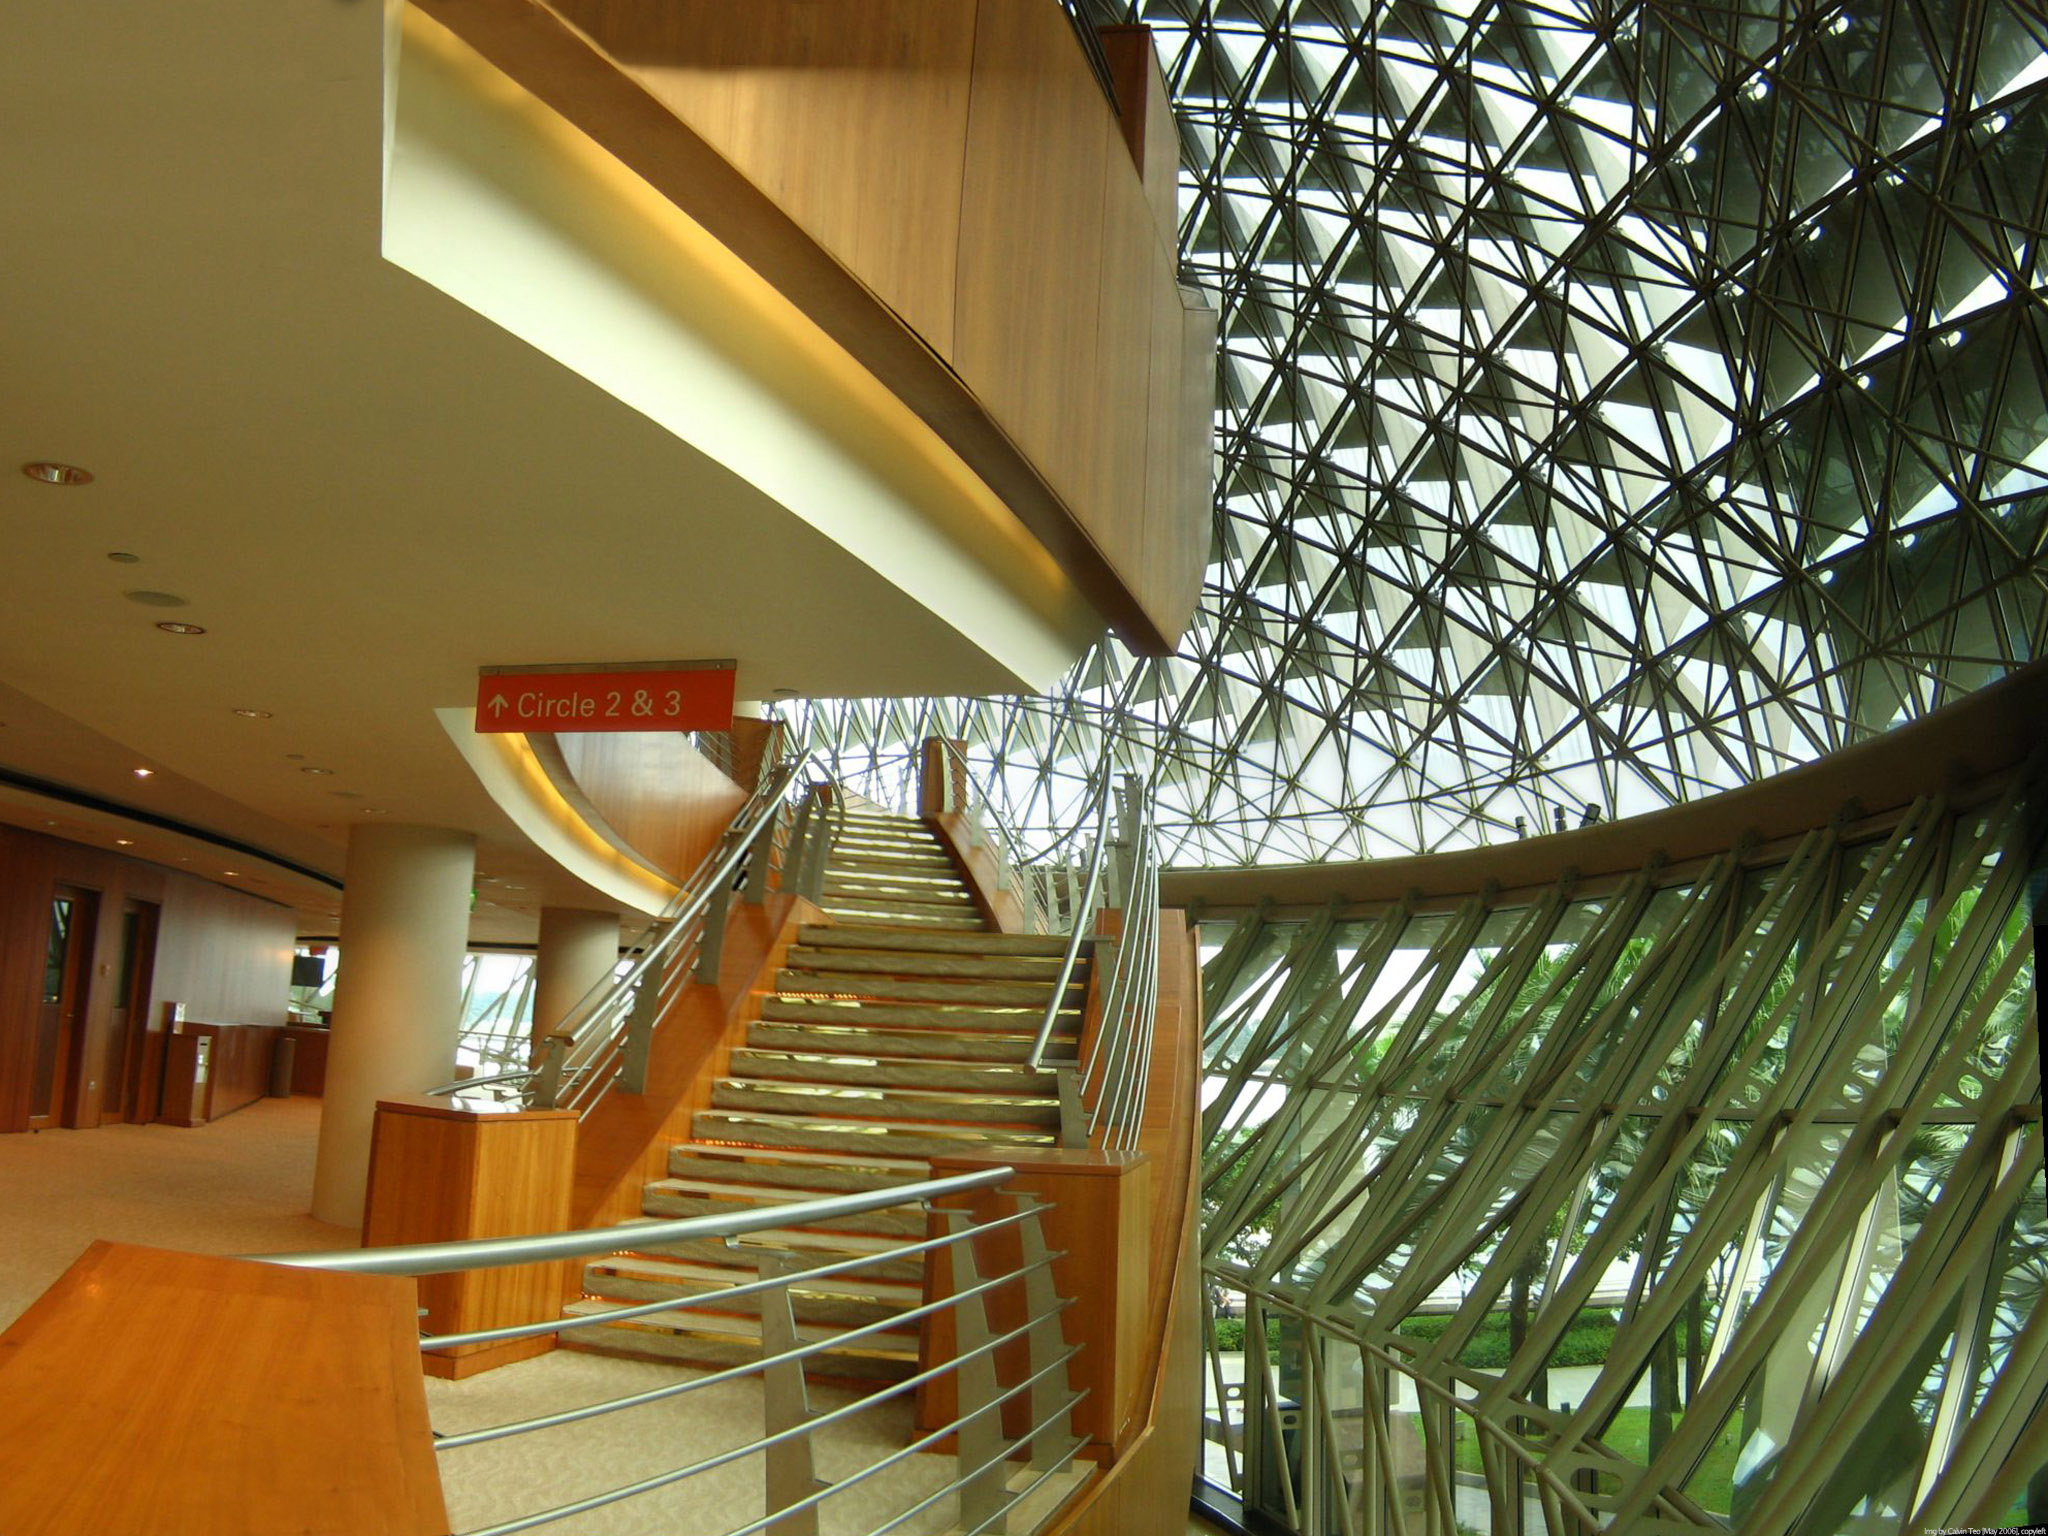 File:Esplanade concert hall reception.jpg - Wikipedia, the free ...